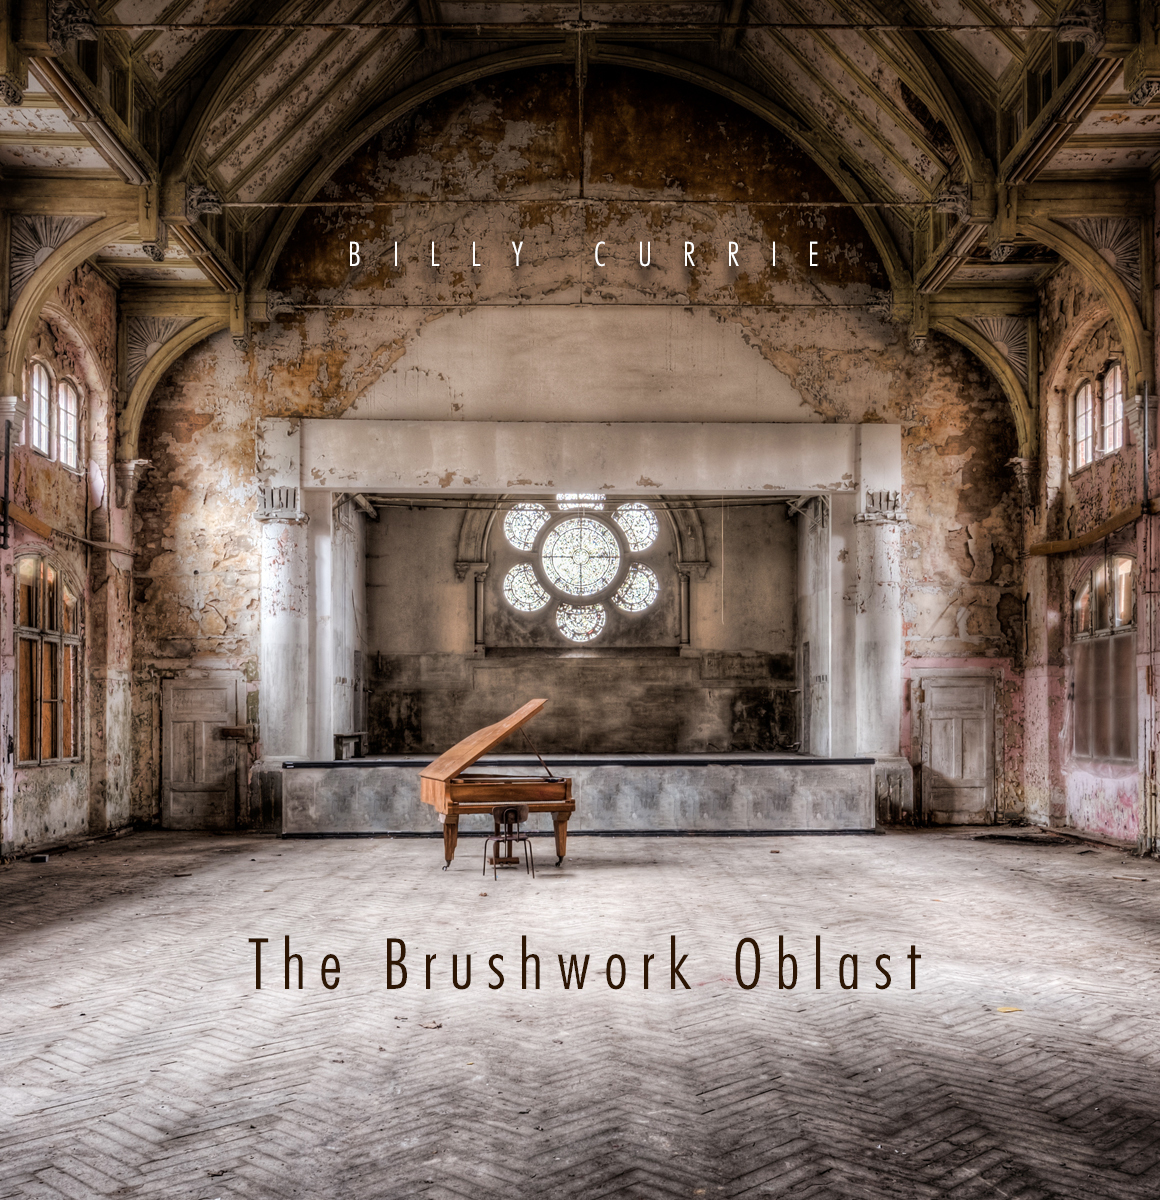 Billy Currie – The Brushwork Oblast